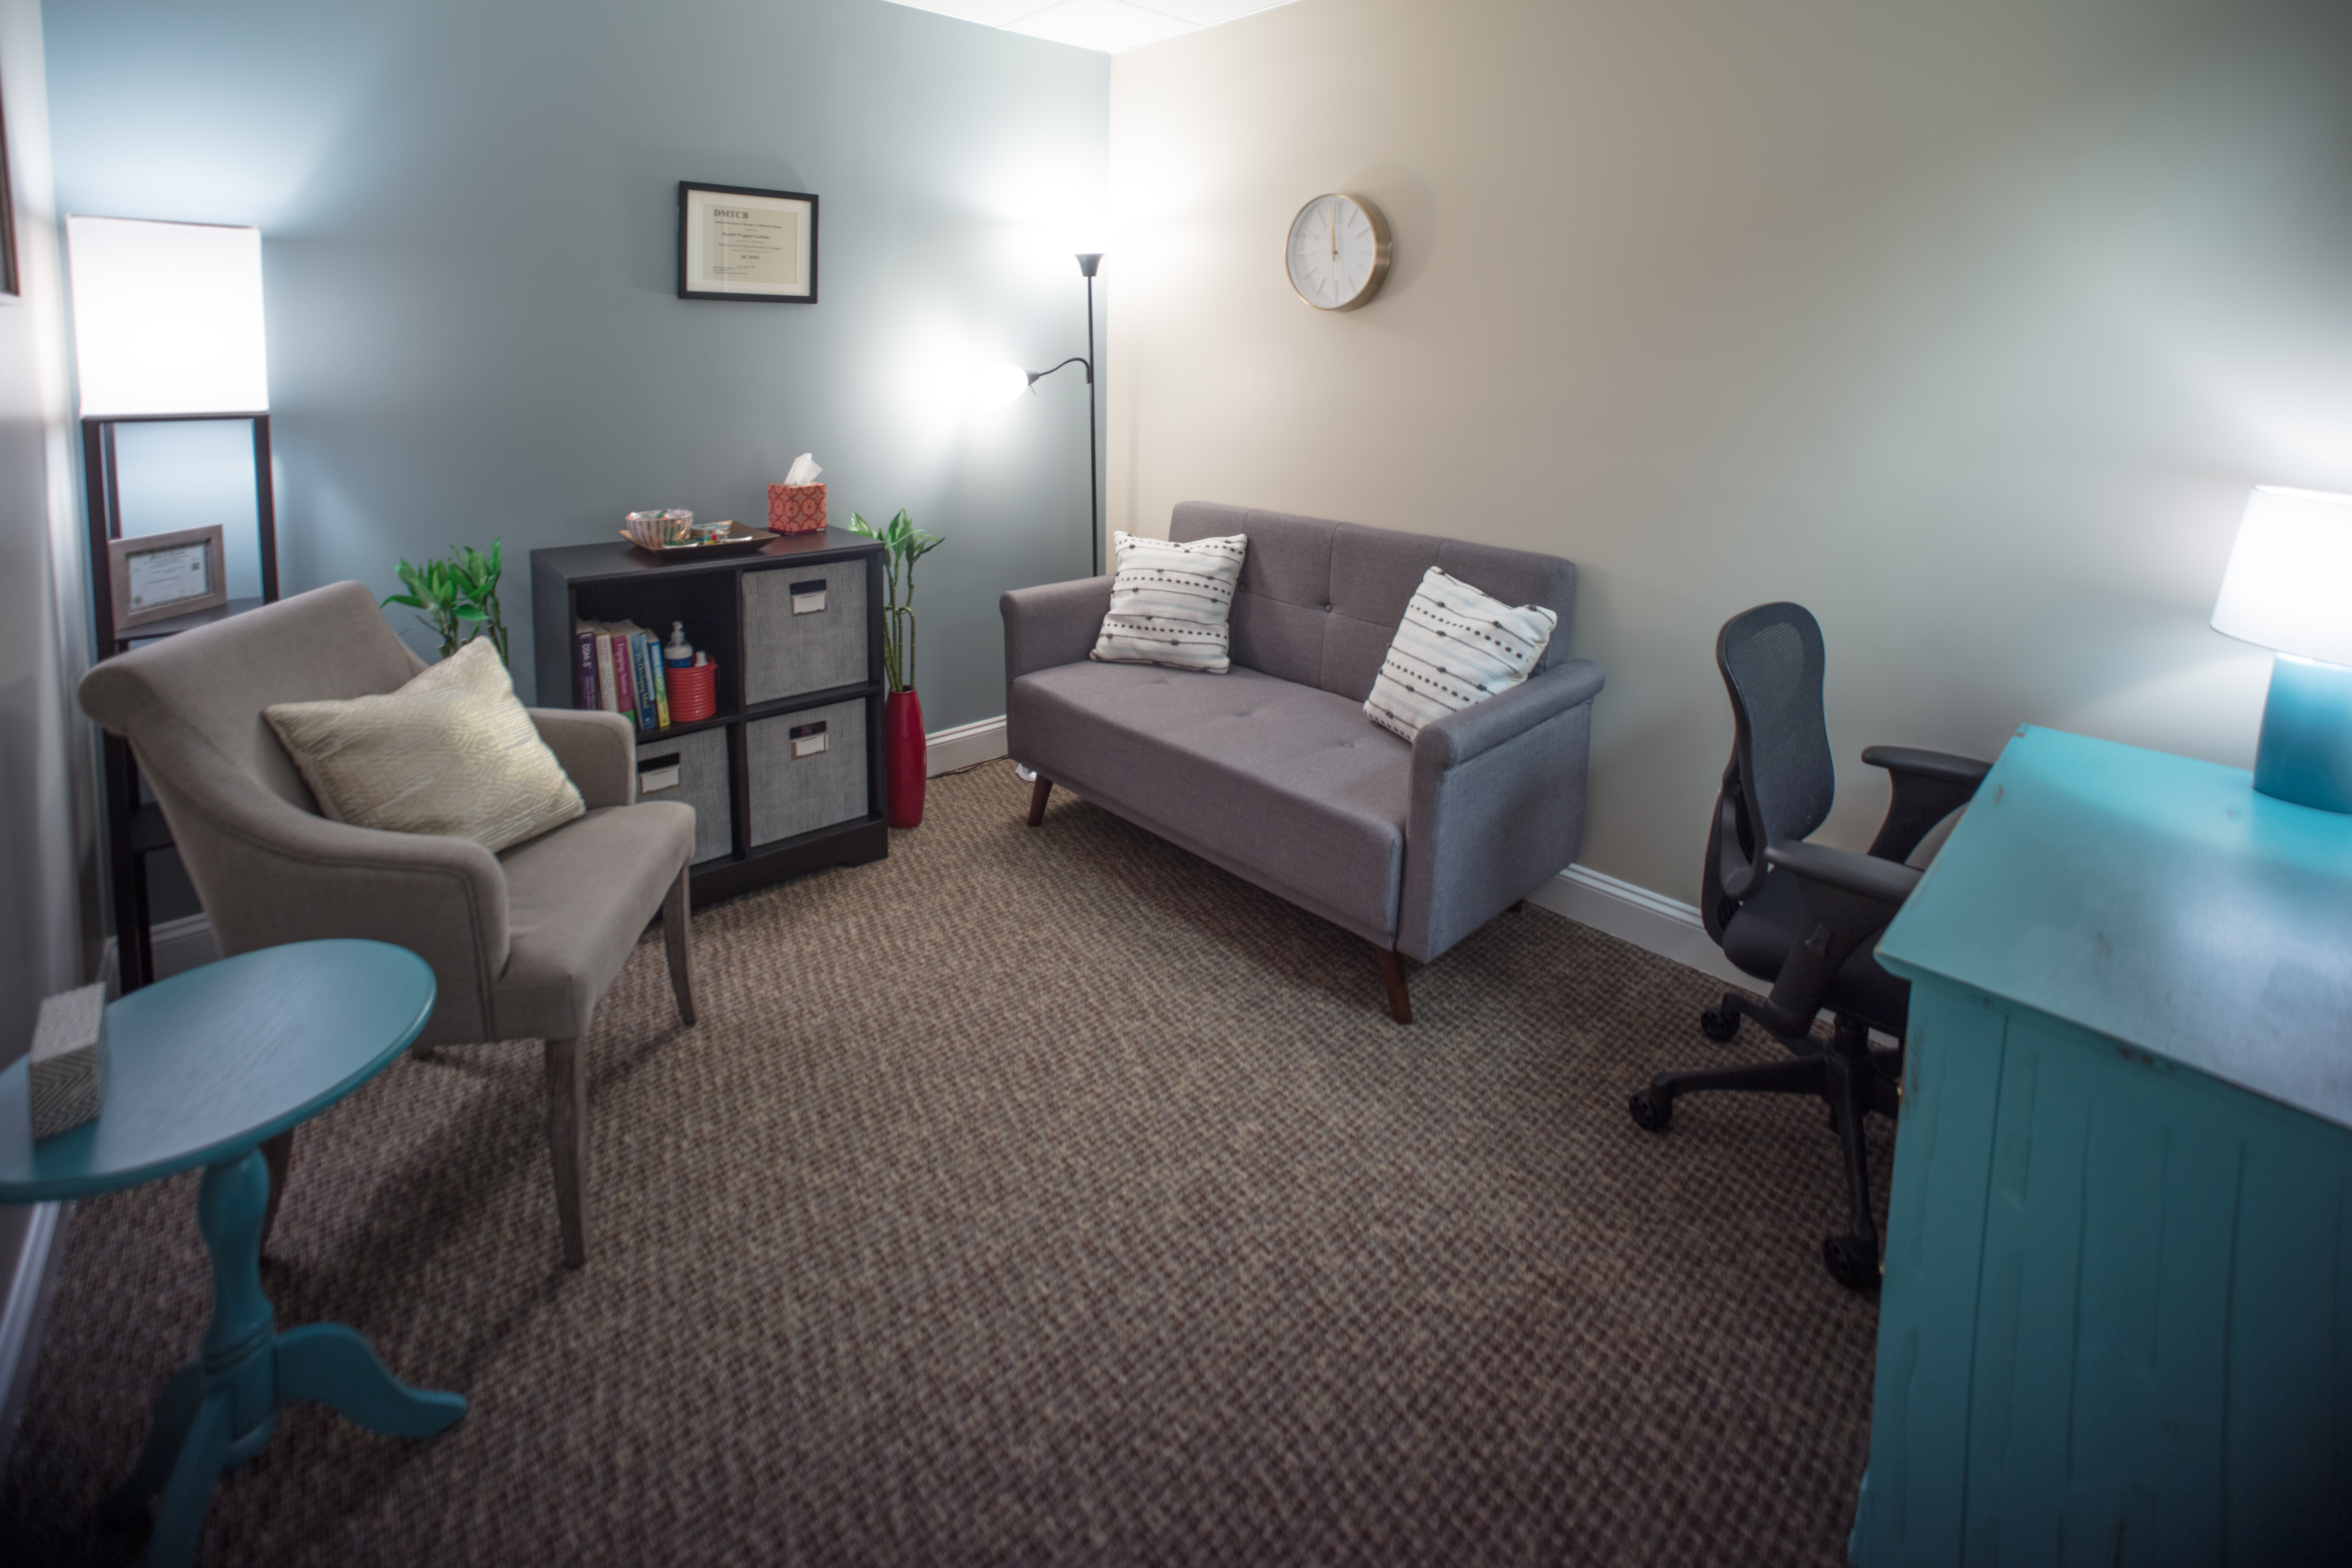 Family Counseling Rooms